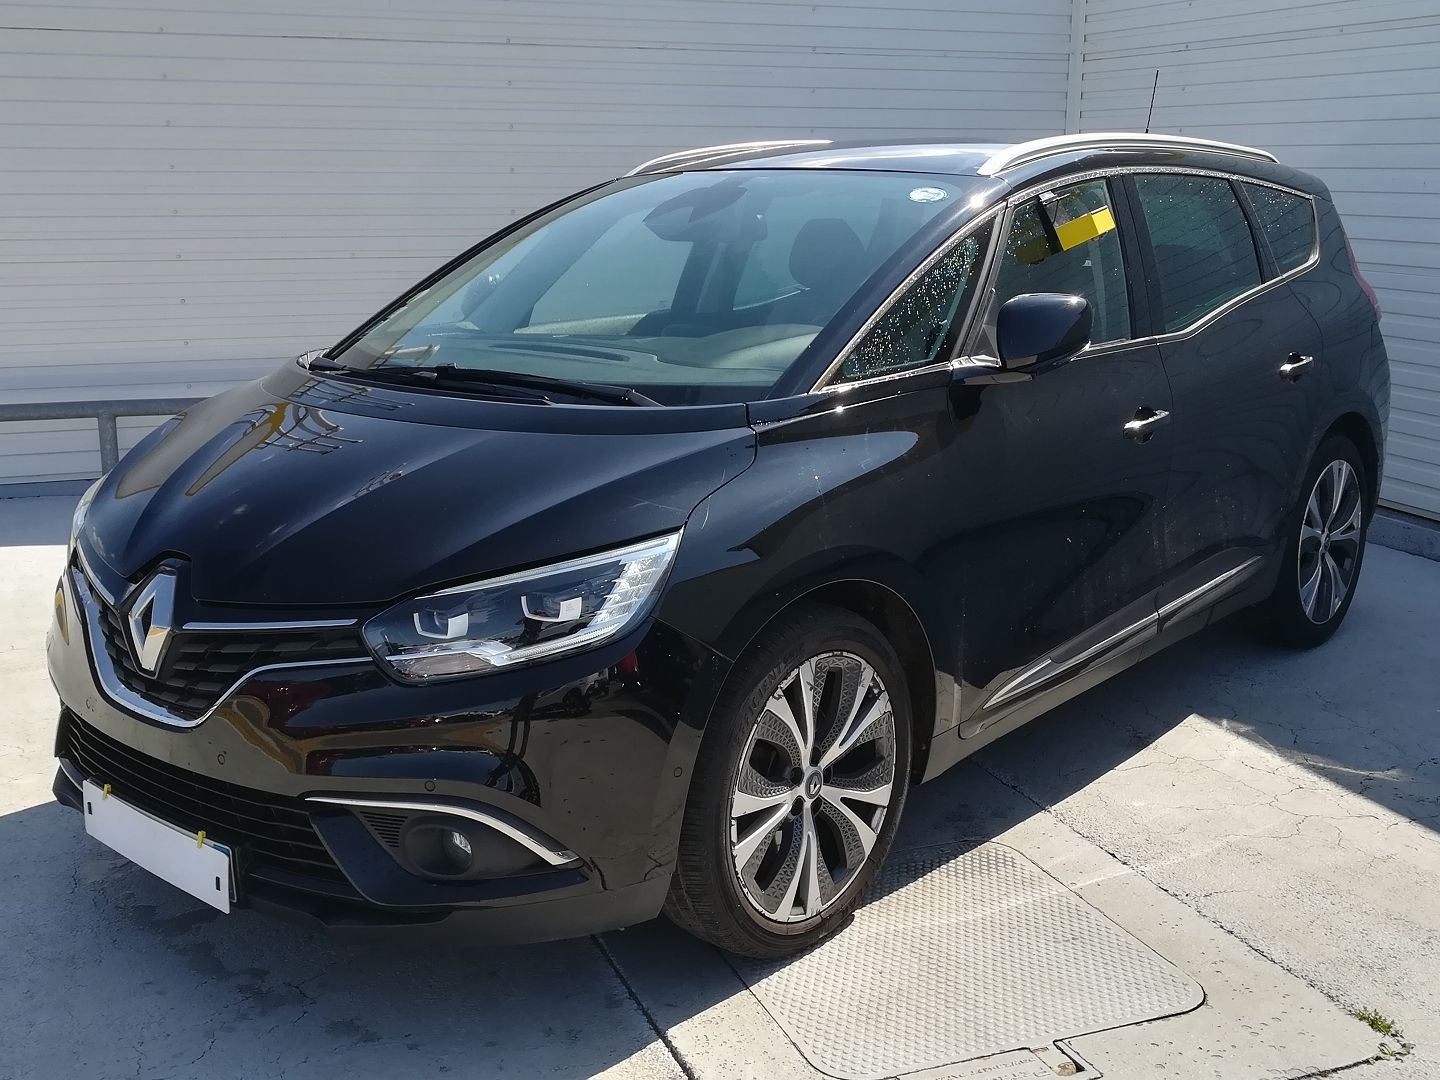 RENAULT GRAND SCENIC IV 1.5 DCI 110CH ENERGY INTENS EDC